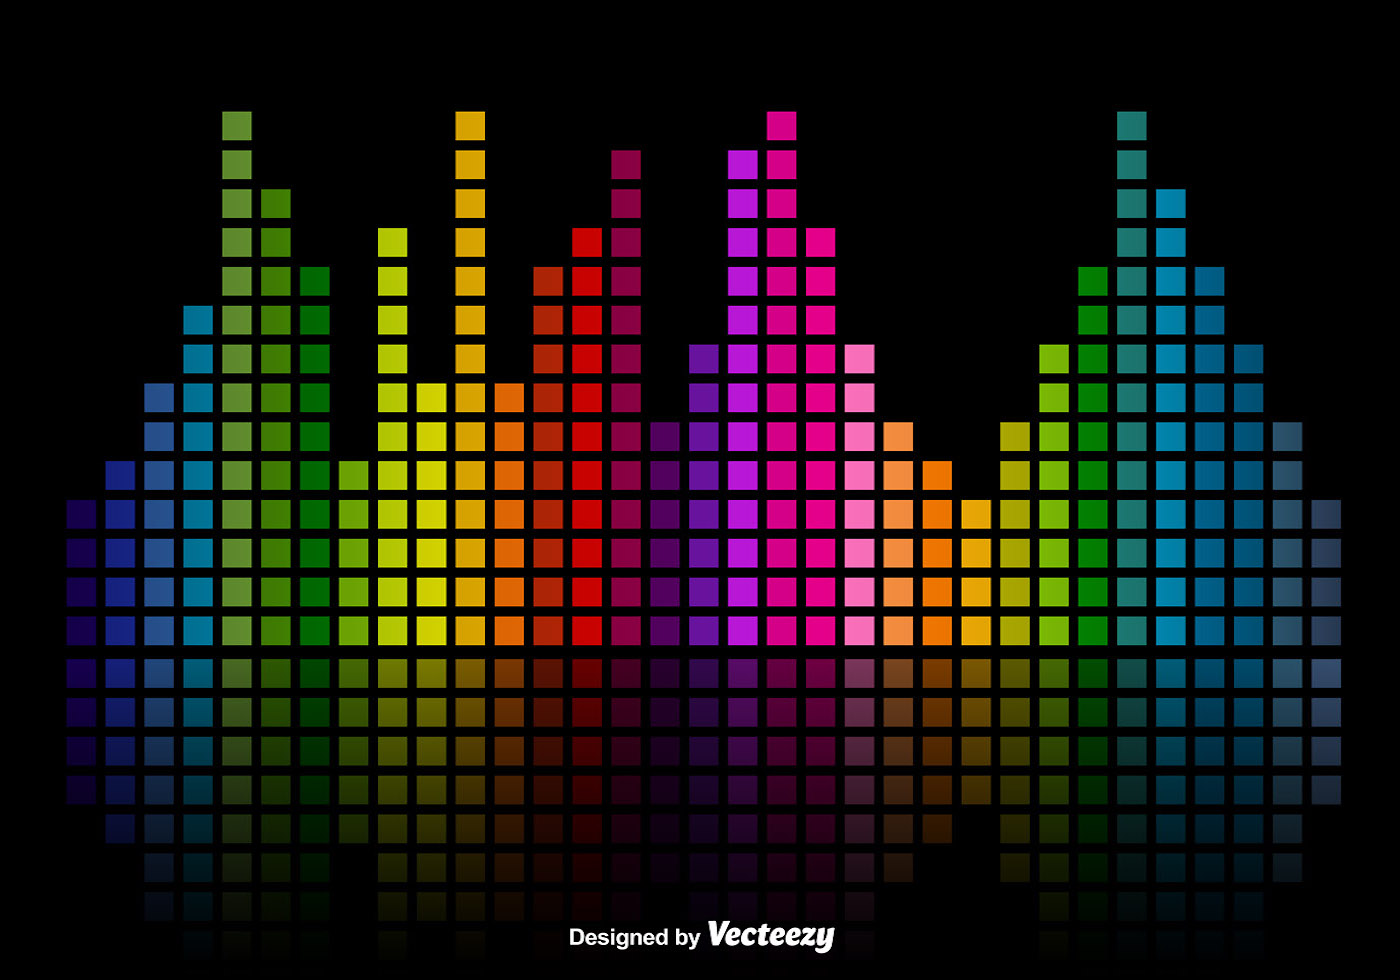 colorful-music-sound-bars-equalizer-vector-background.jpg